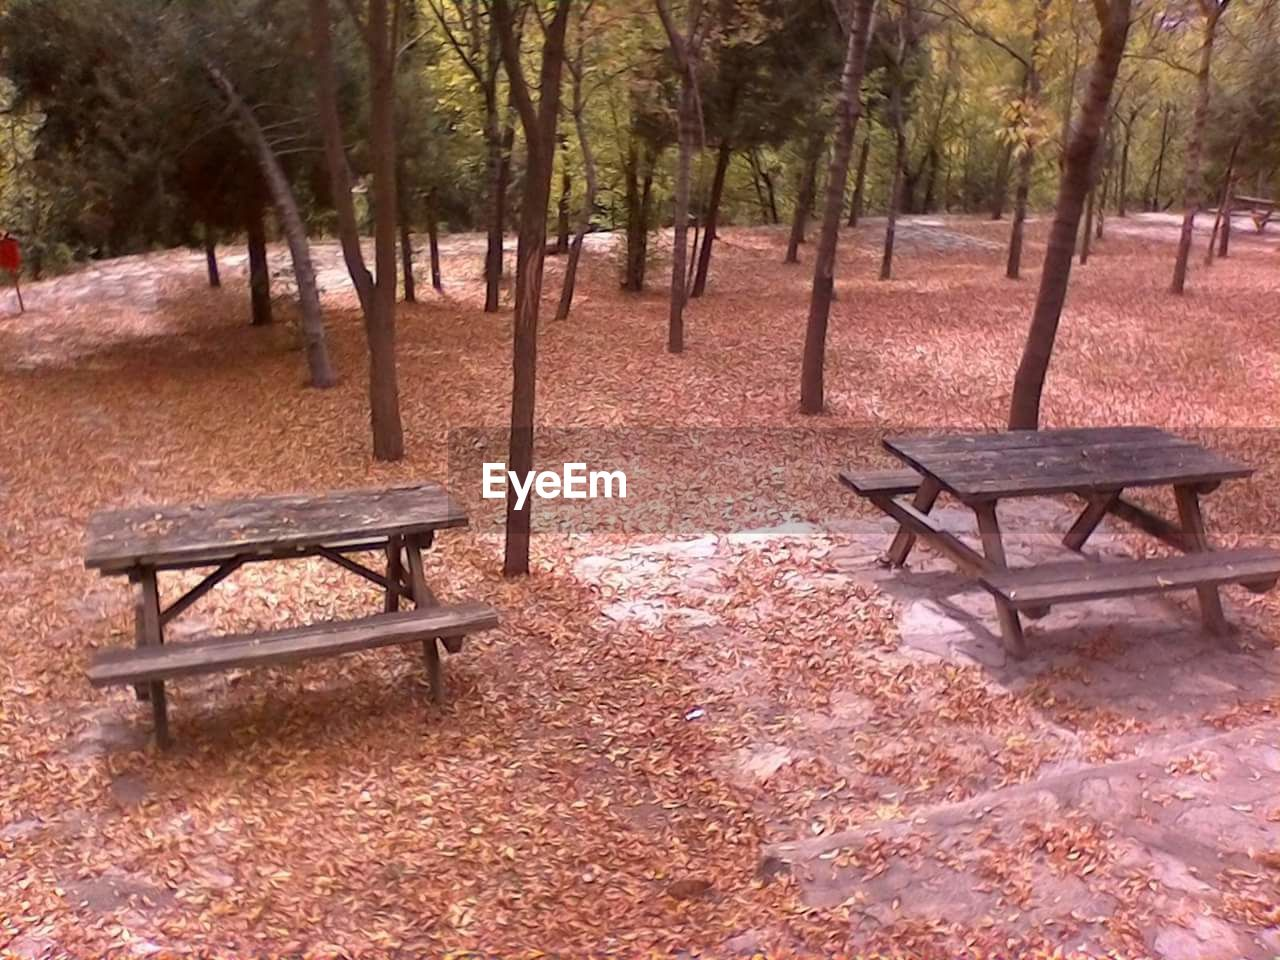 bench, tree, autumn, tranquility, absence, nature, tranquil scene, park - man made space, scenics, outdoors, change, landscape, day, no people, beauty in nature, leaf, chair, seat